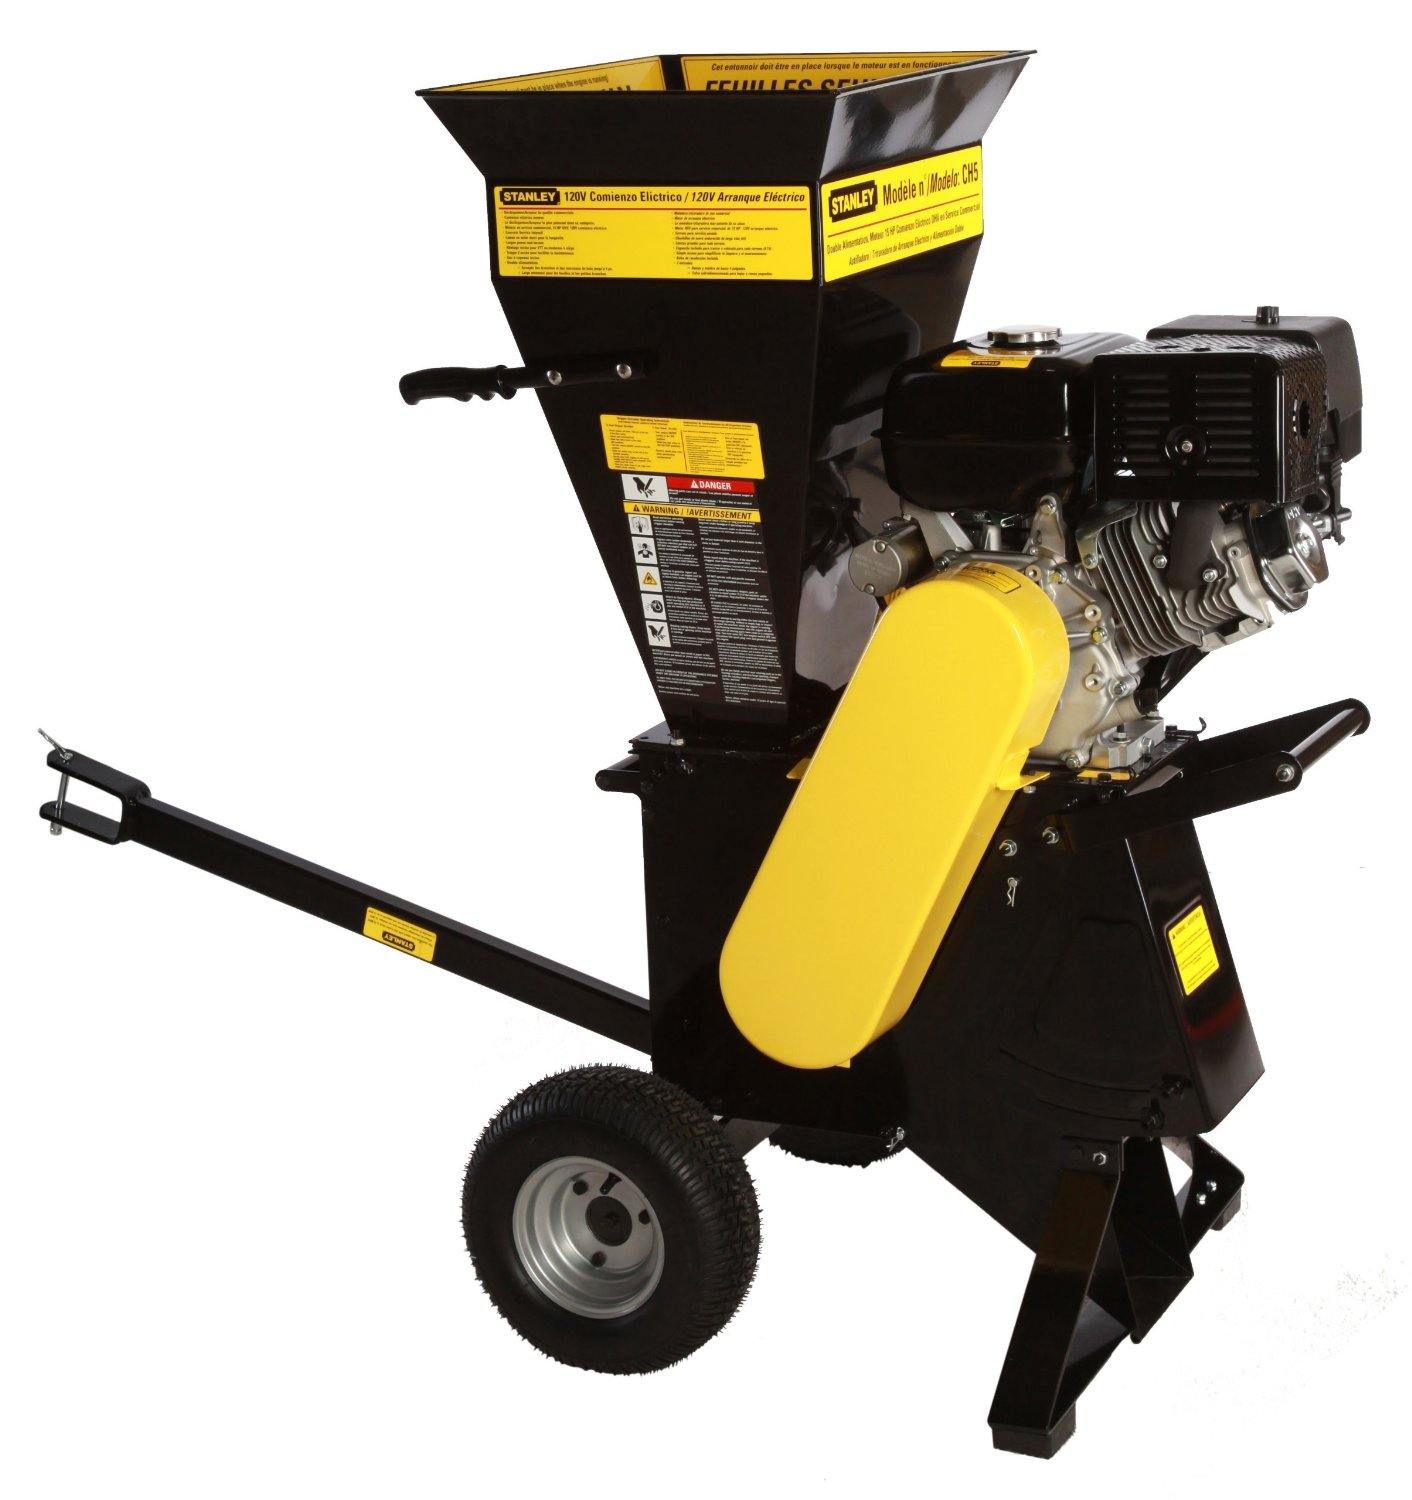 Stanley 15 HP 420cc Commercial Duty 120V Electric Start Chipper Shredder